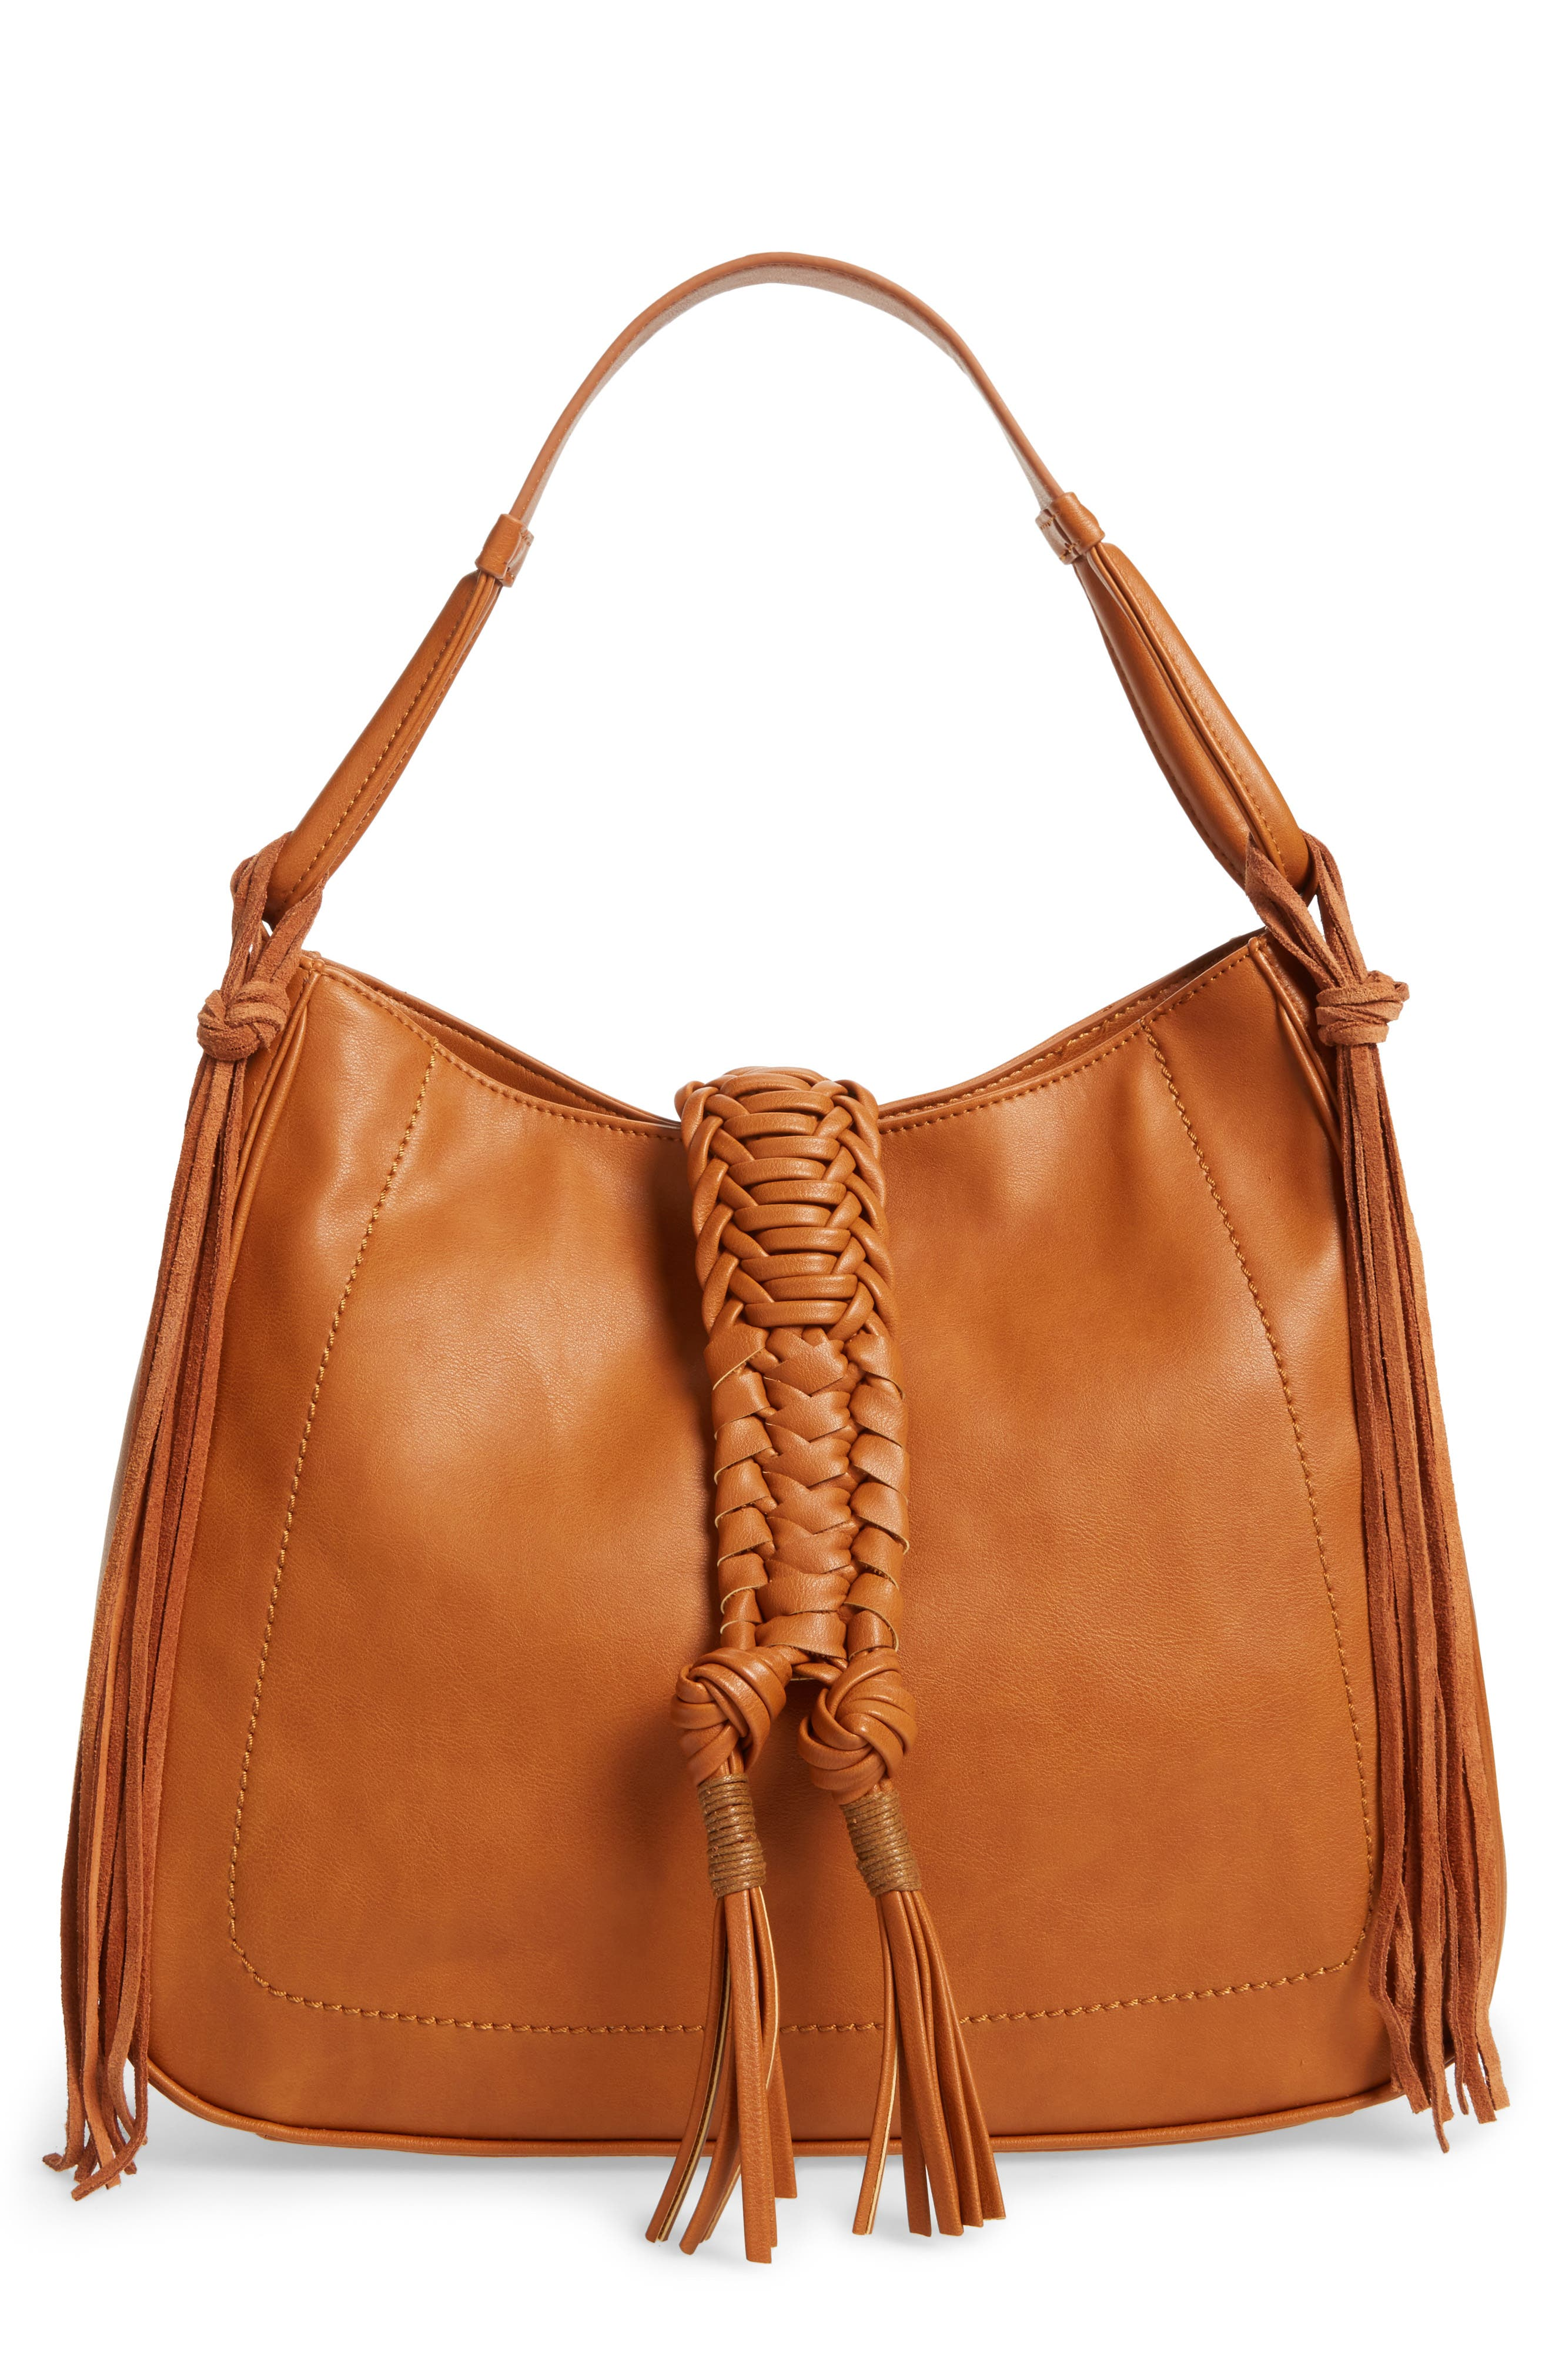 Alternate Image 1 Selected - Sole Society Vale Faux Leather Hobo Bag